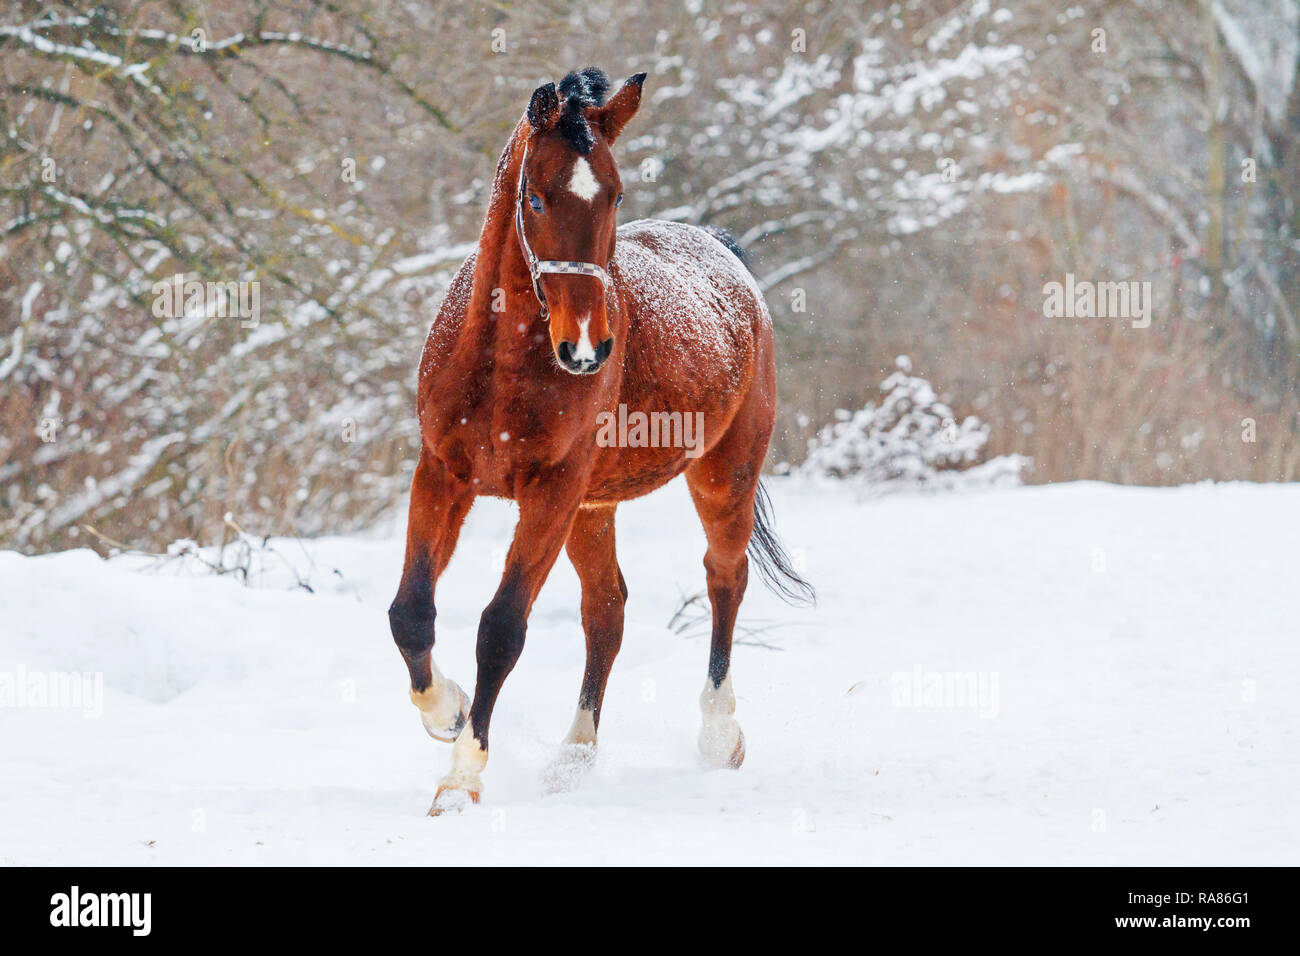 Beautiful Horse Running On The White Snow Beautiful Winter Photos Stock Photo Alamy